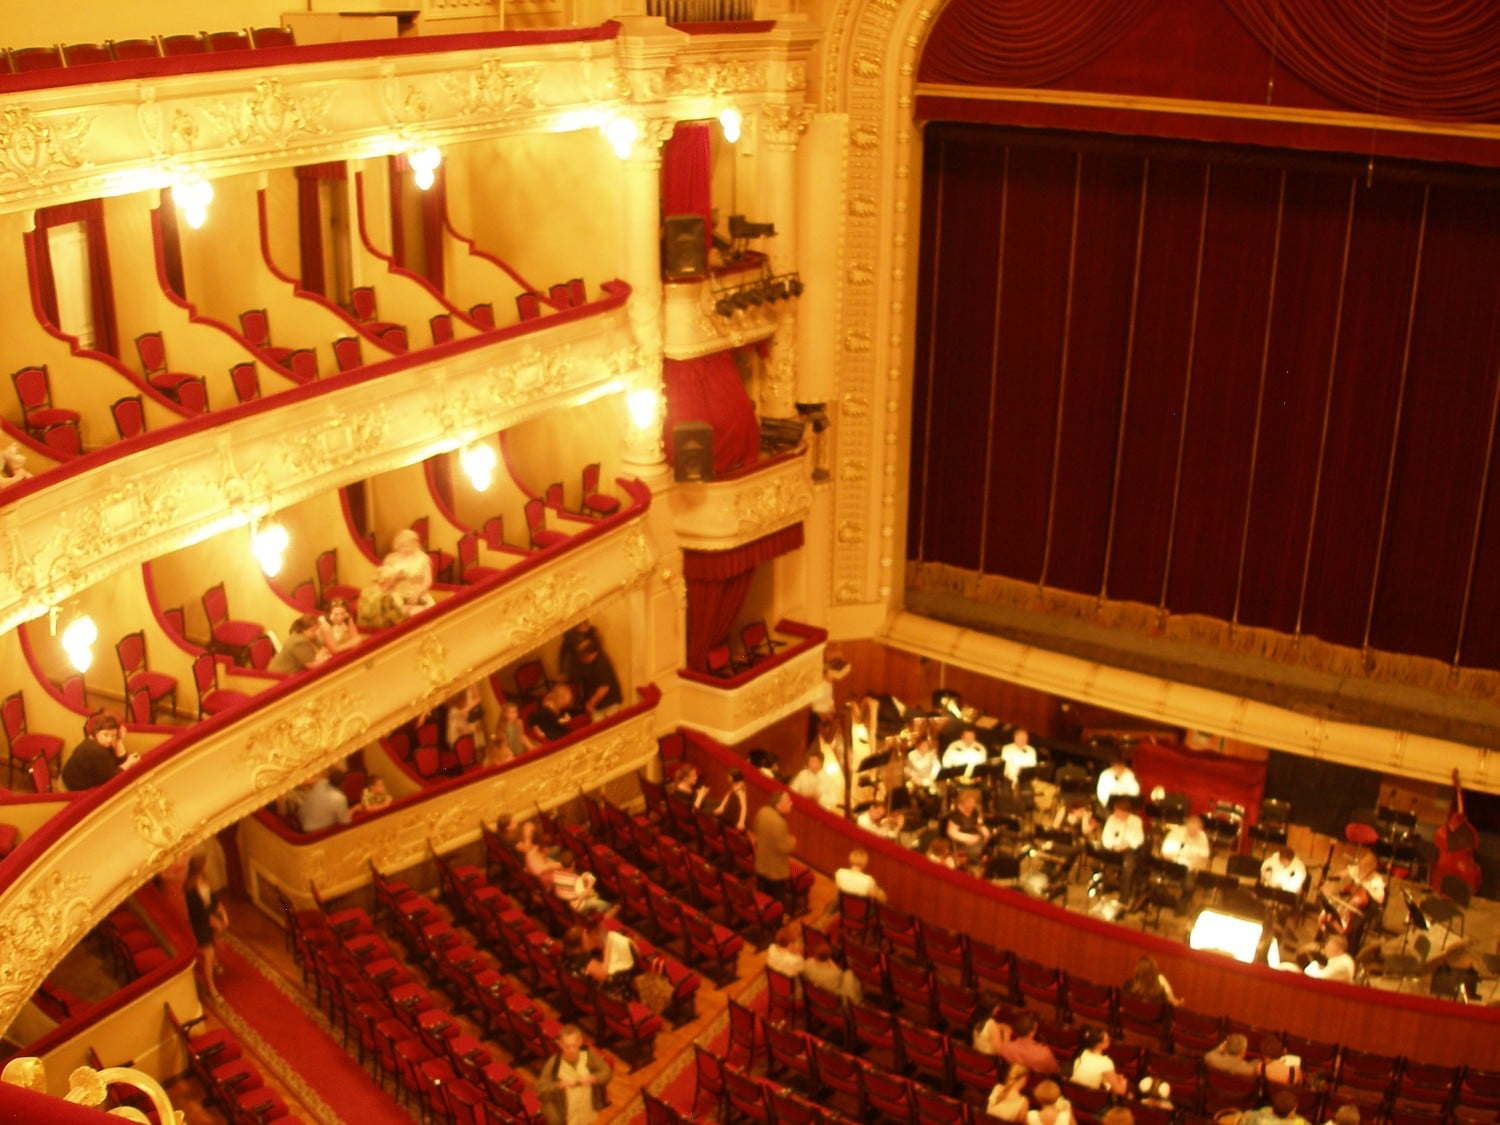 View from one of the theater balconies before a ballet production. Not many audience members had arrived yet, but the orchestra musicians were already warming up.